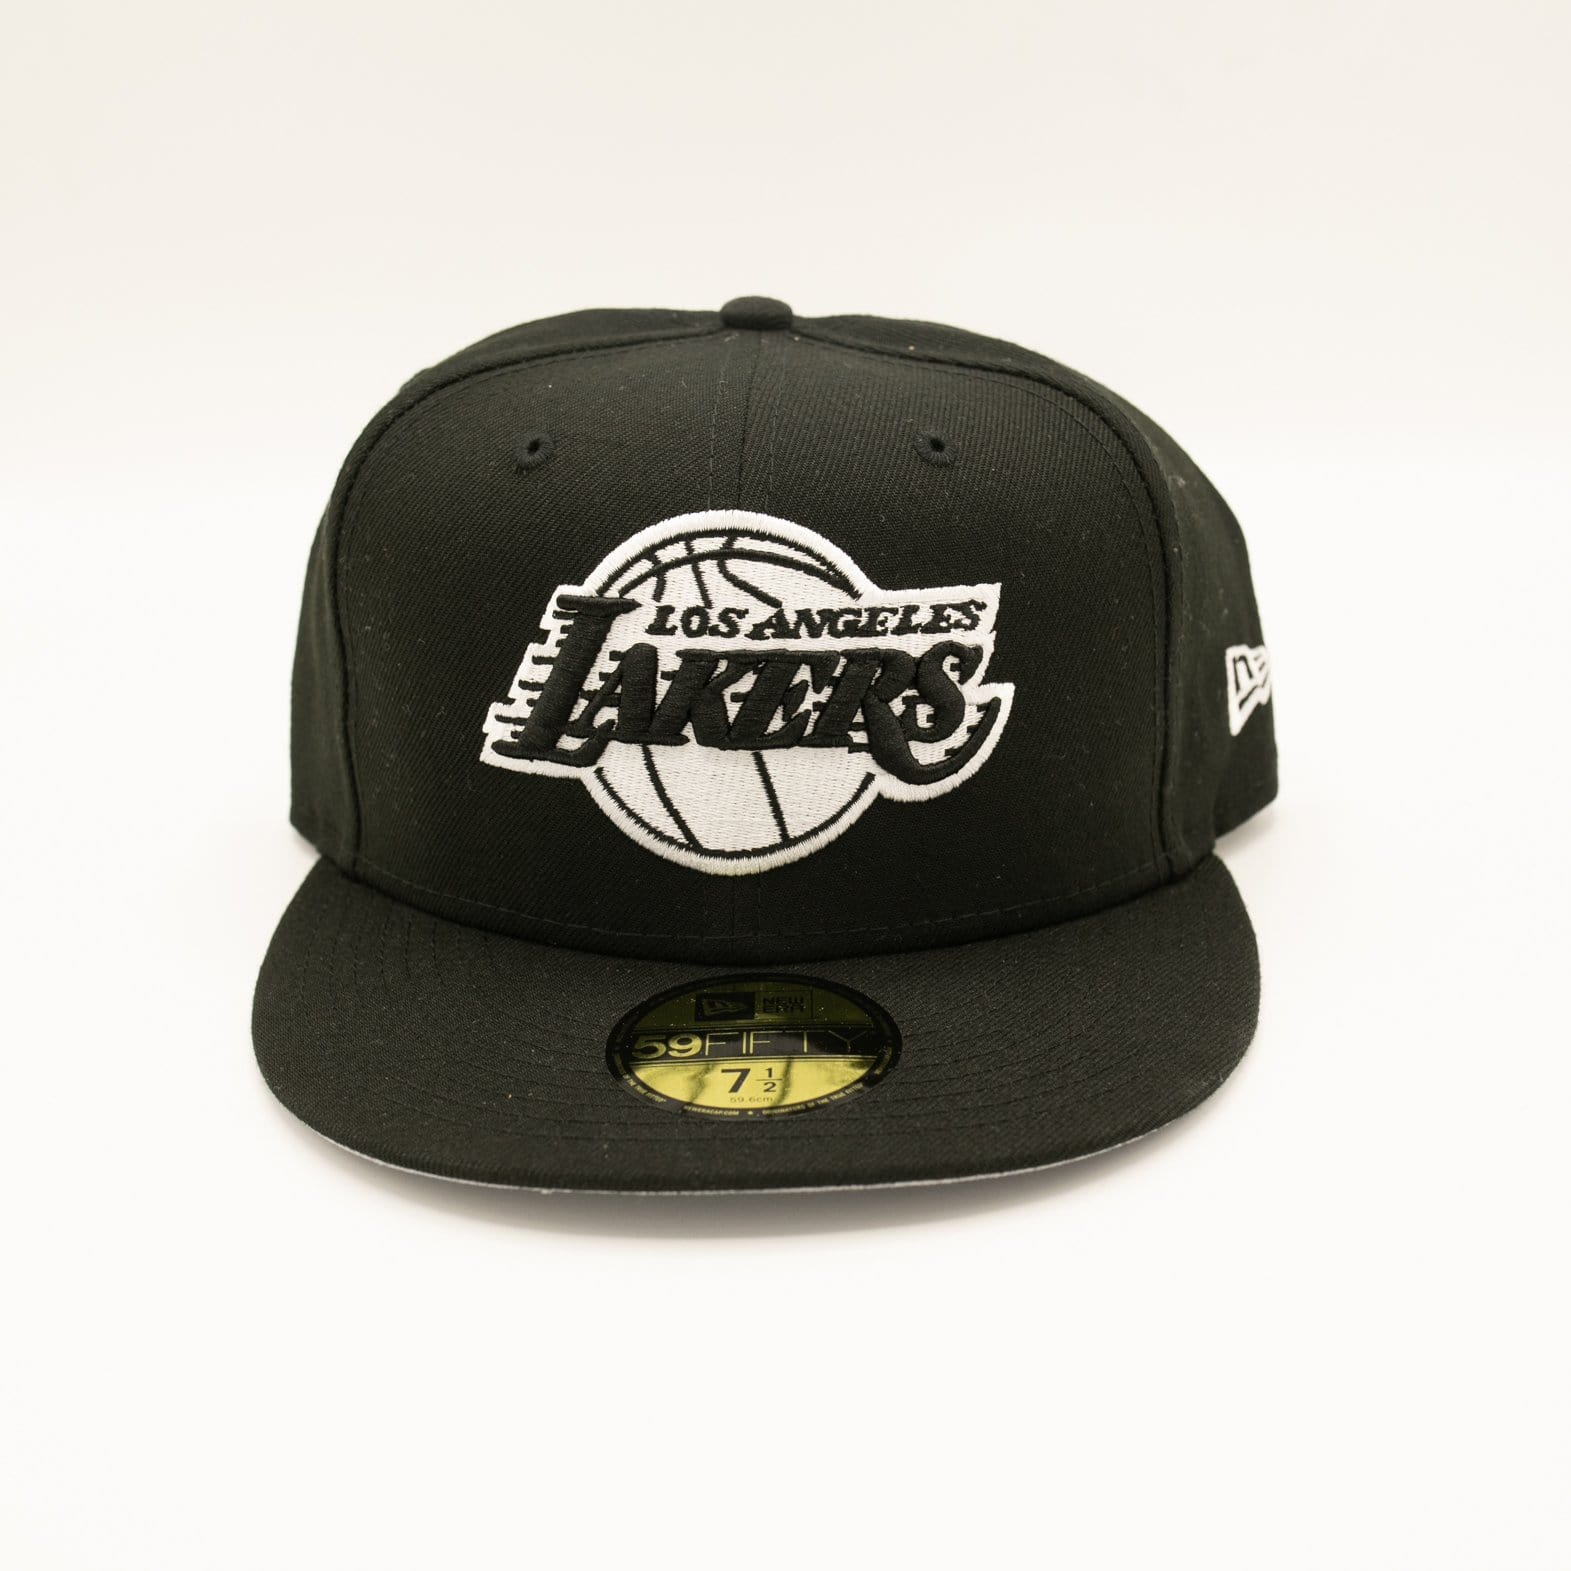 Image of Los Angeles Lakers Black & White 59Fifty Fitted